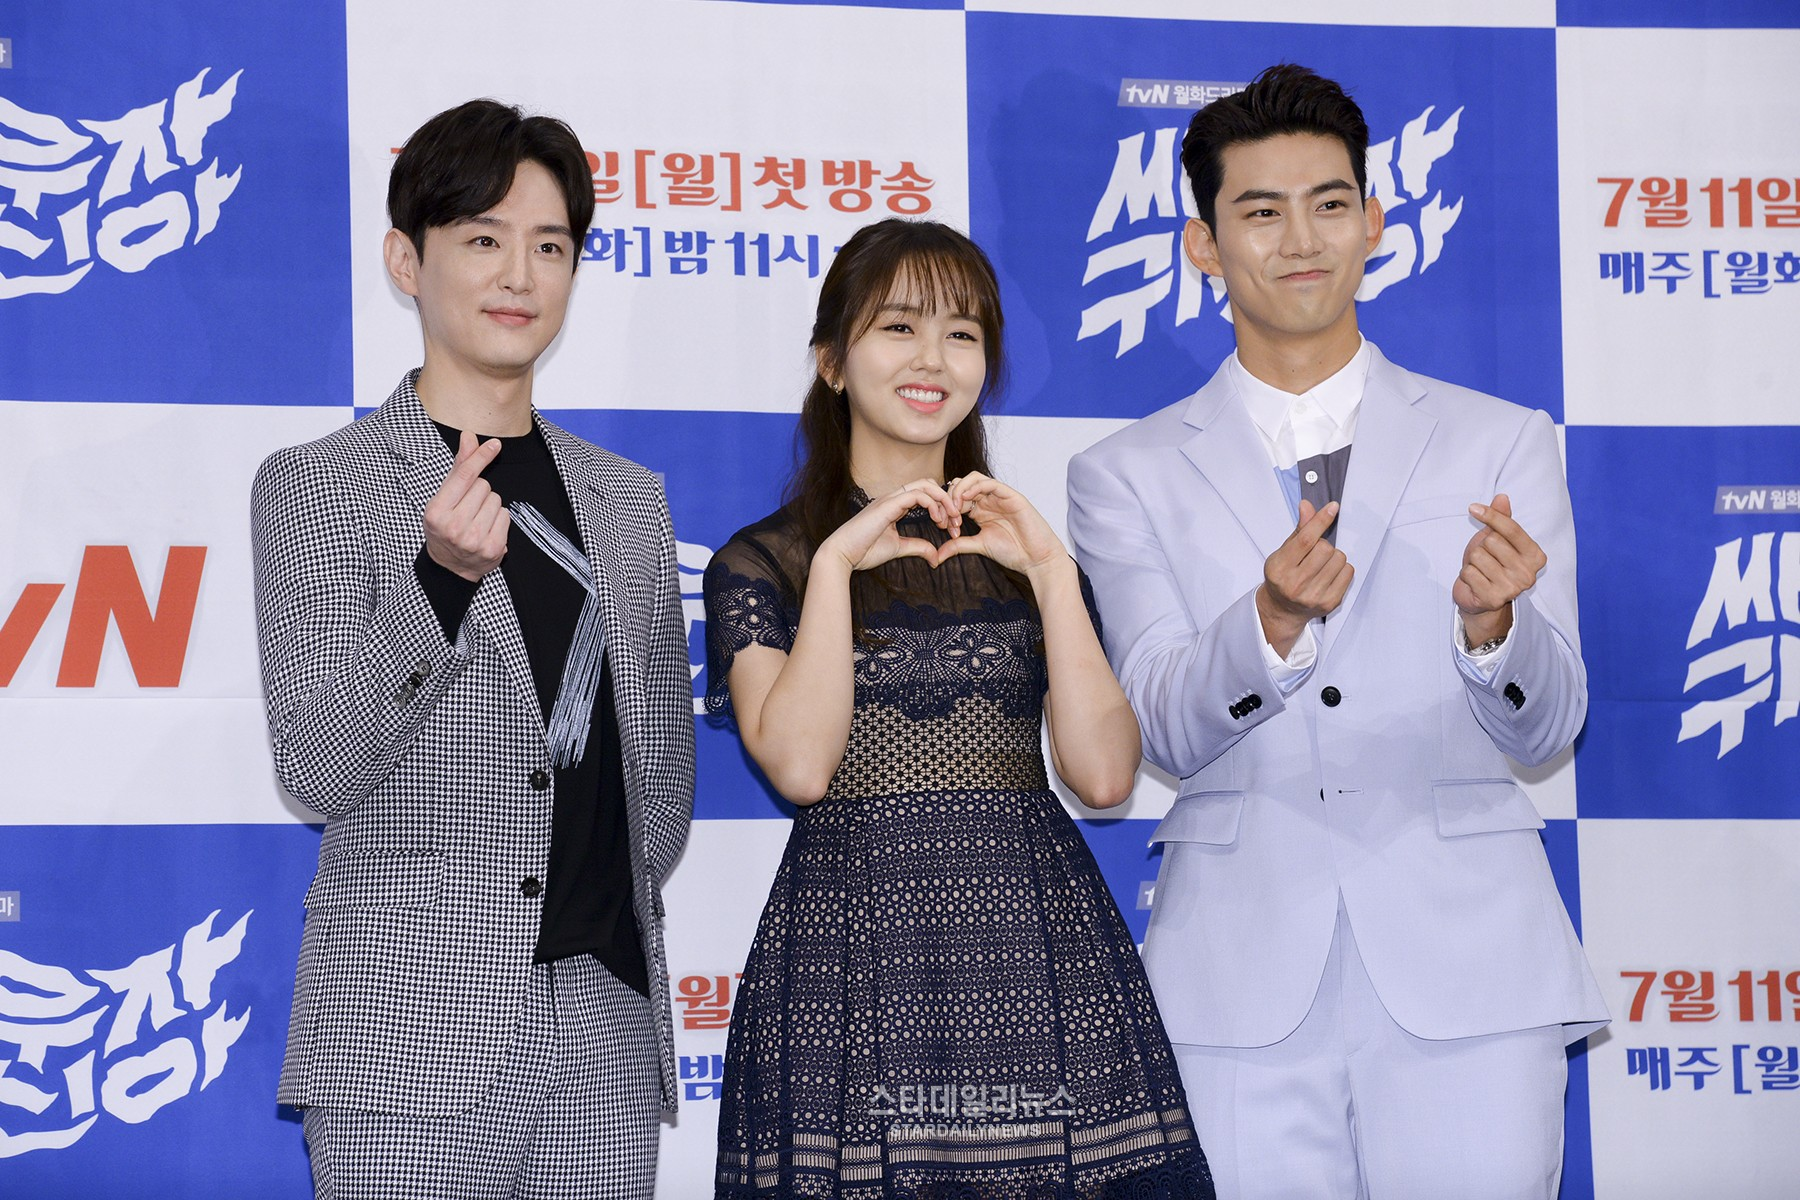 bring it on ghost cast and crew to go on jeju island trip to